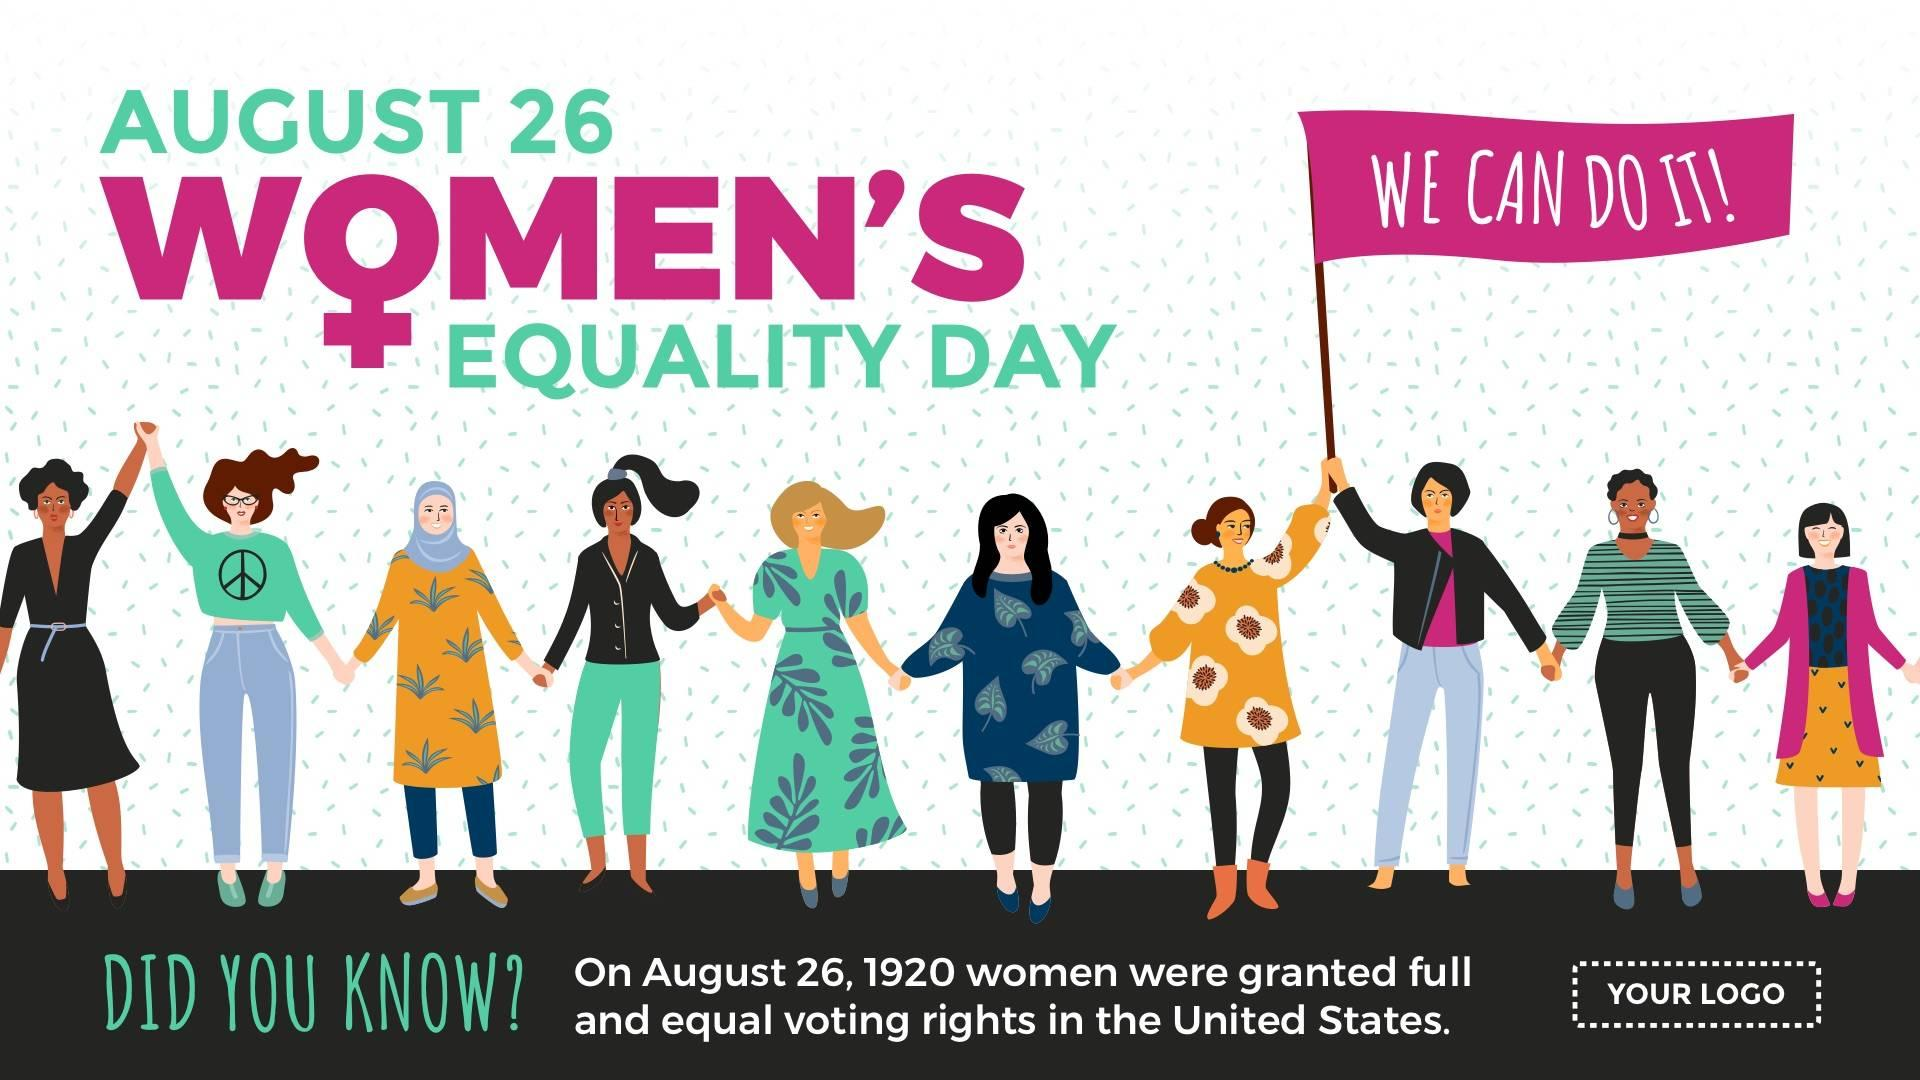 Women's Equality Day Digital Signage Template